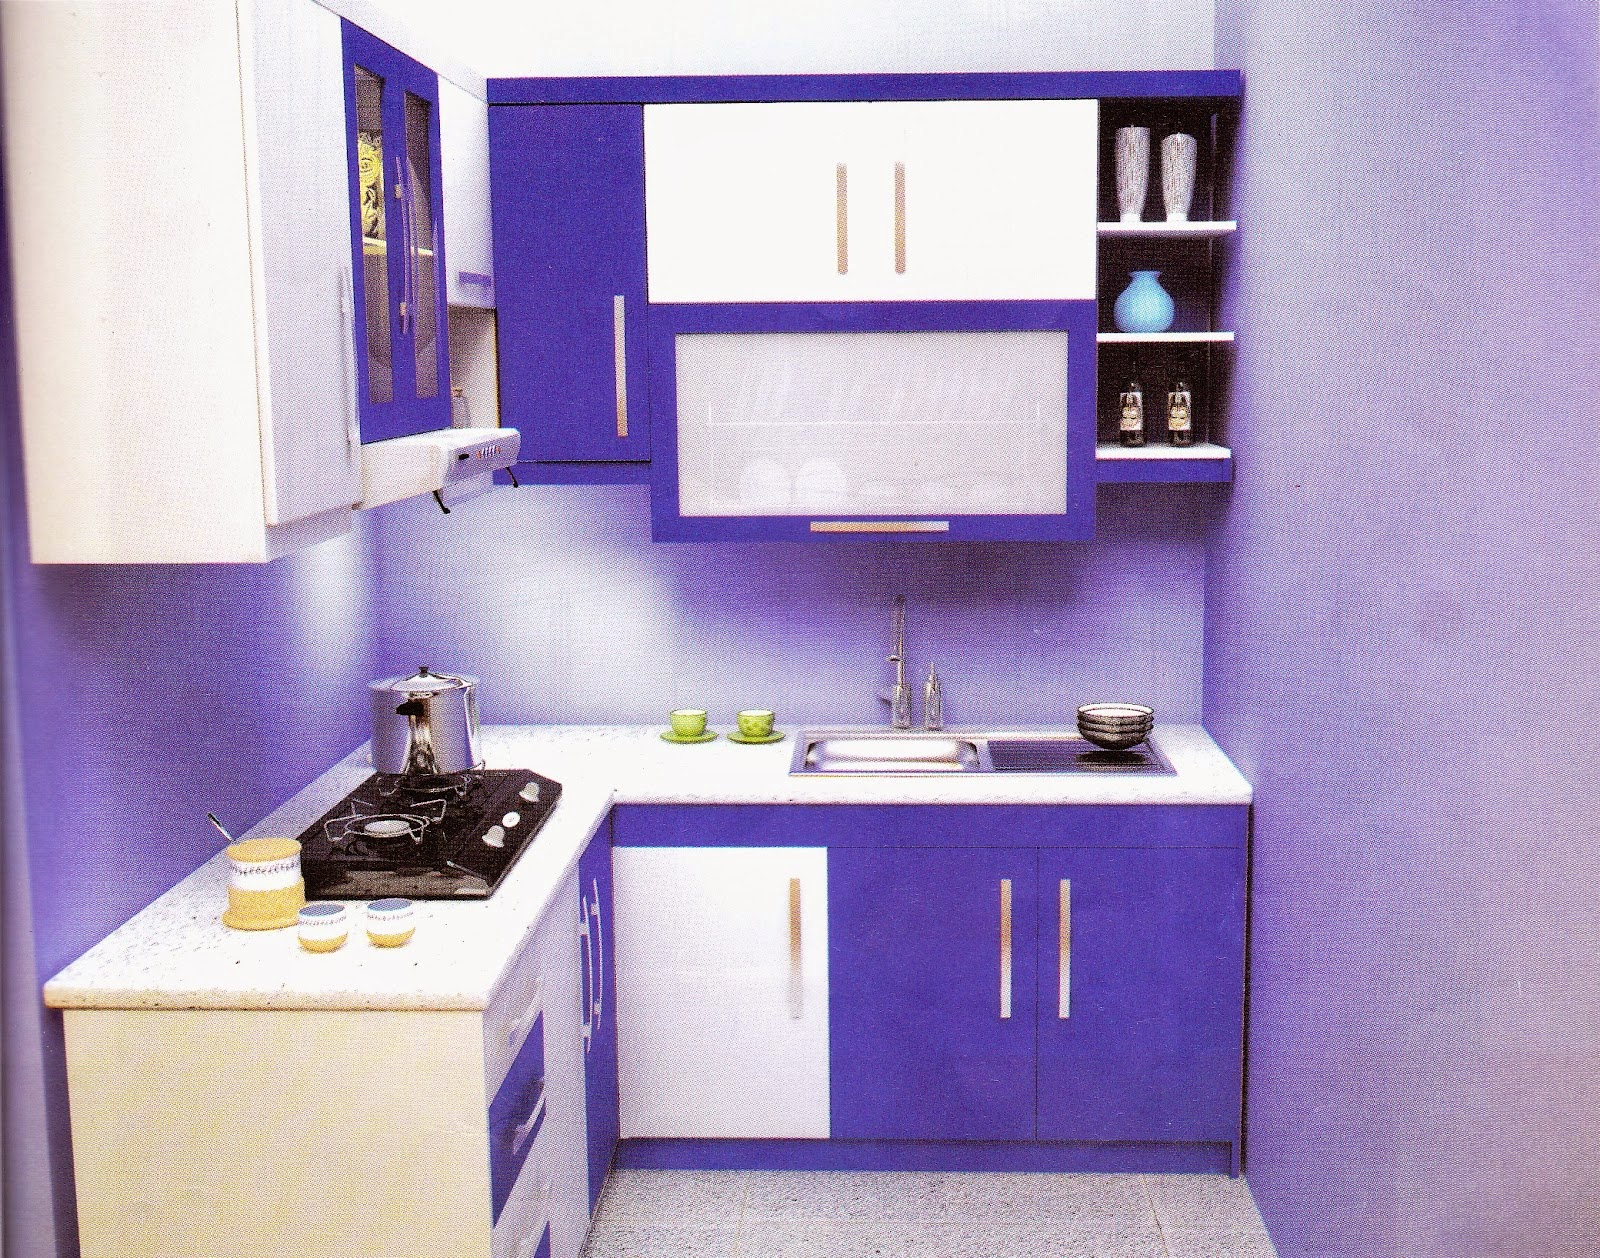 Kitchen set bandung hp 0896 1474 9219 pin bbm 7f920827 for Kitchen set jual